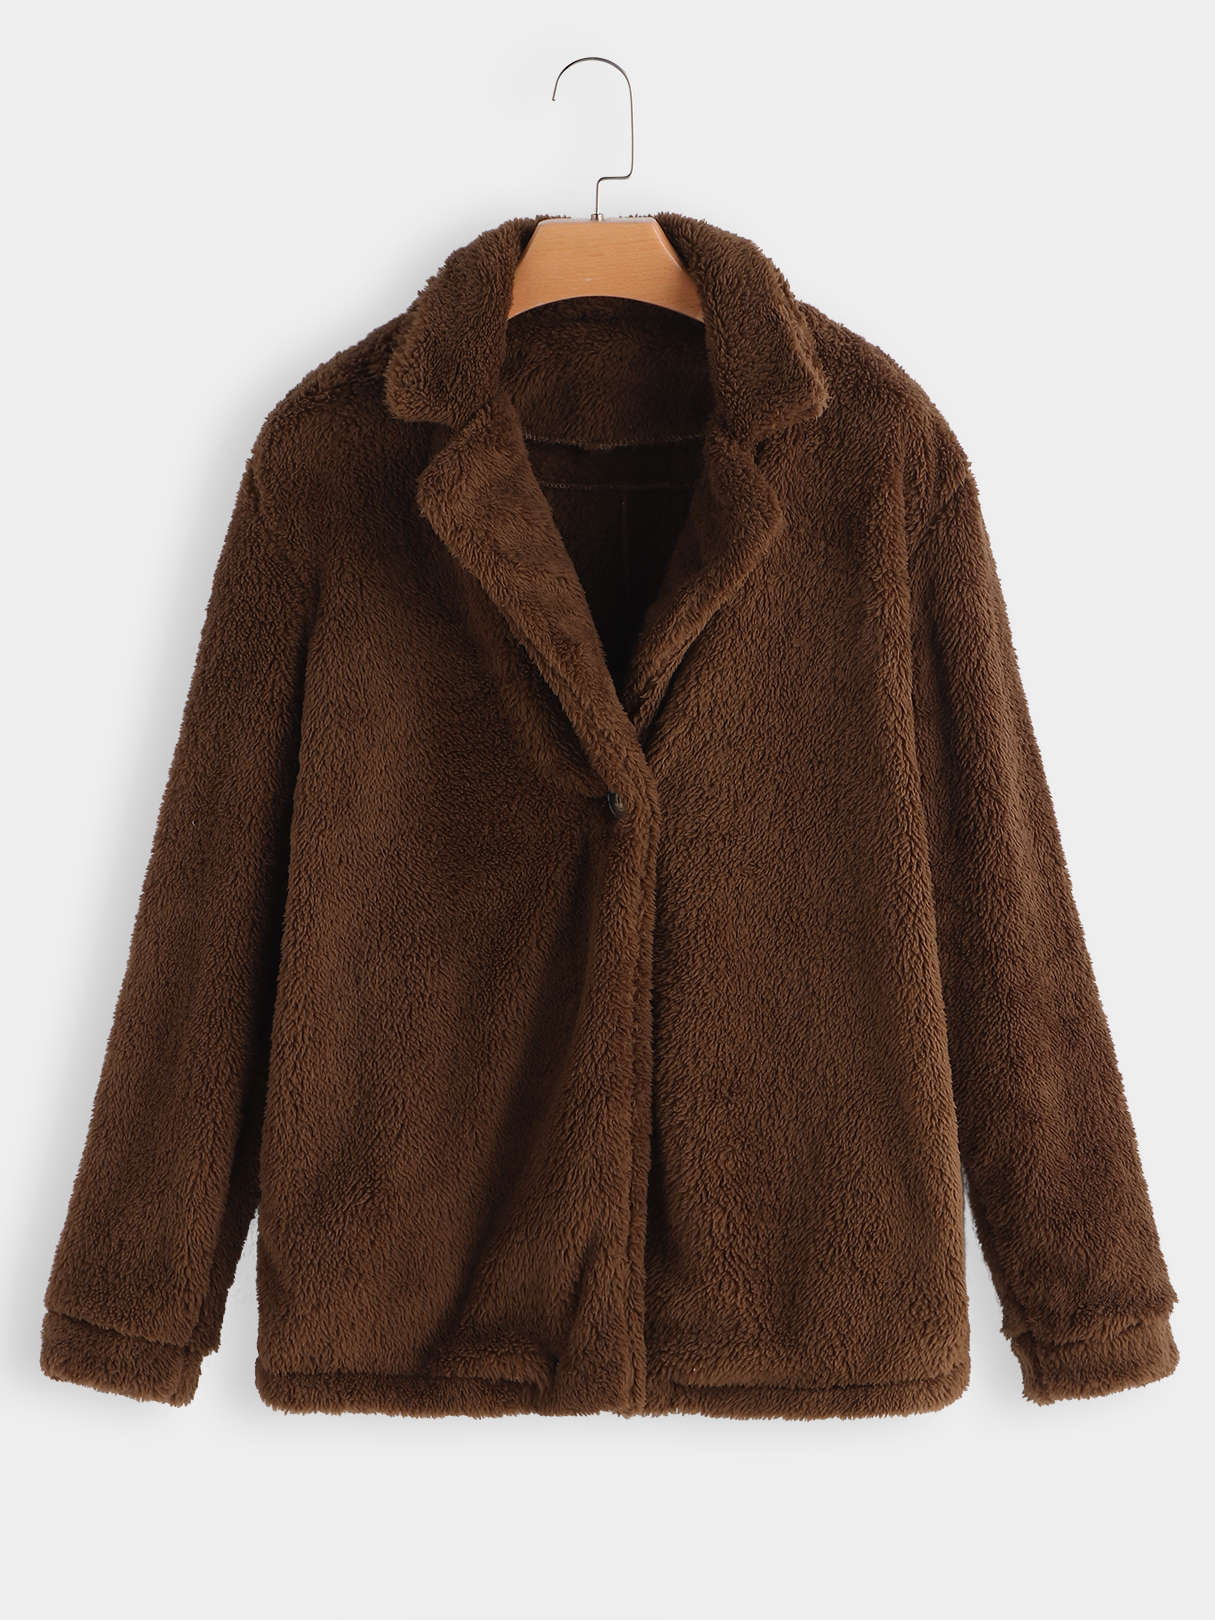 Brown Lapel Collar Long Sleeves Faux Fur Coat